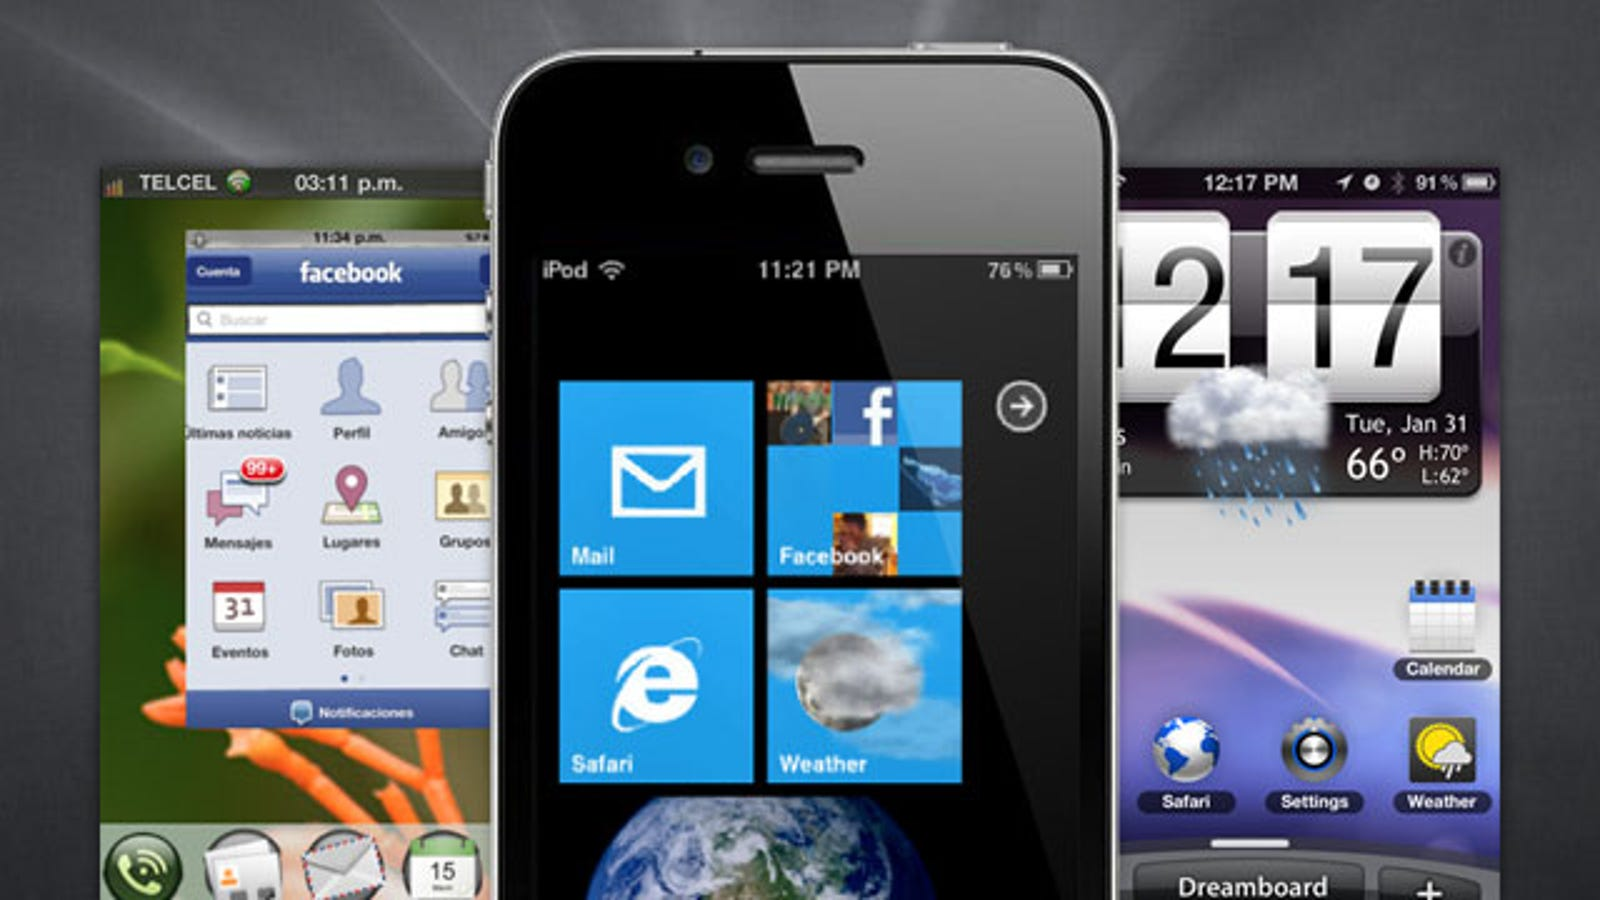 Make Your Jailbroken Iphone Look Like Android Windows Phone 7 Or